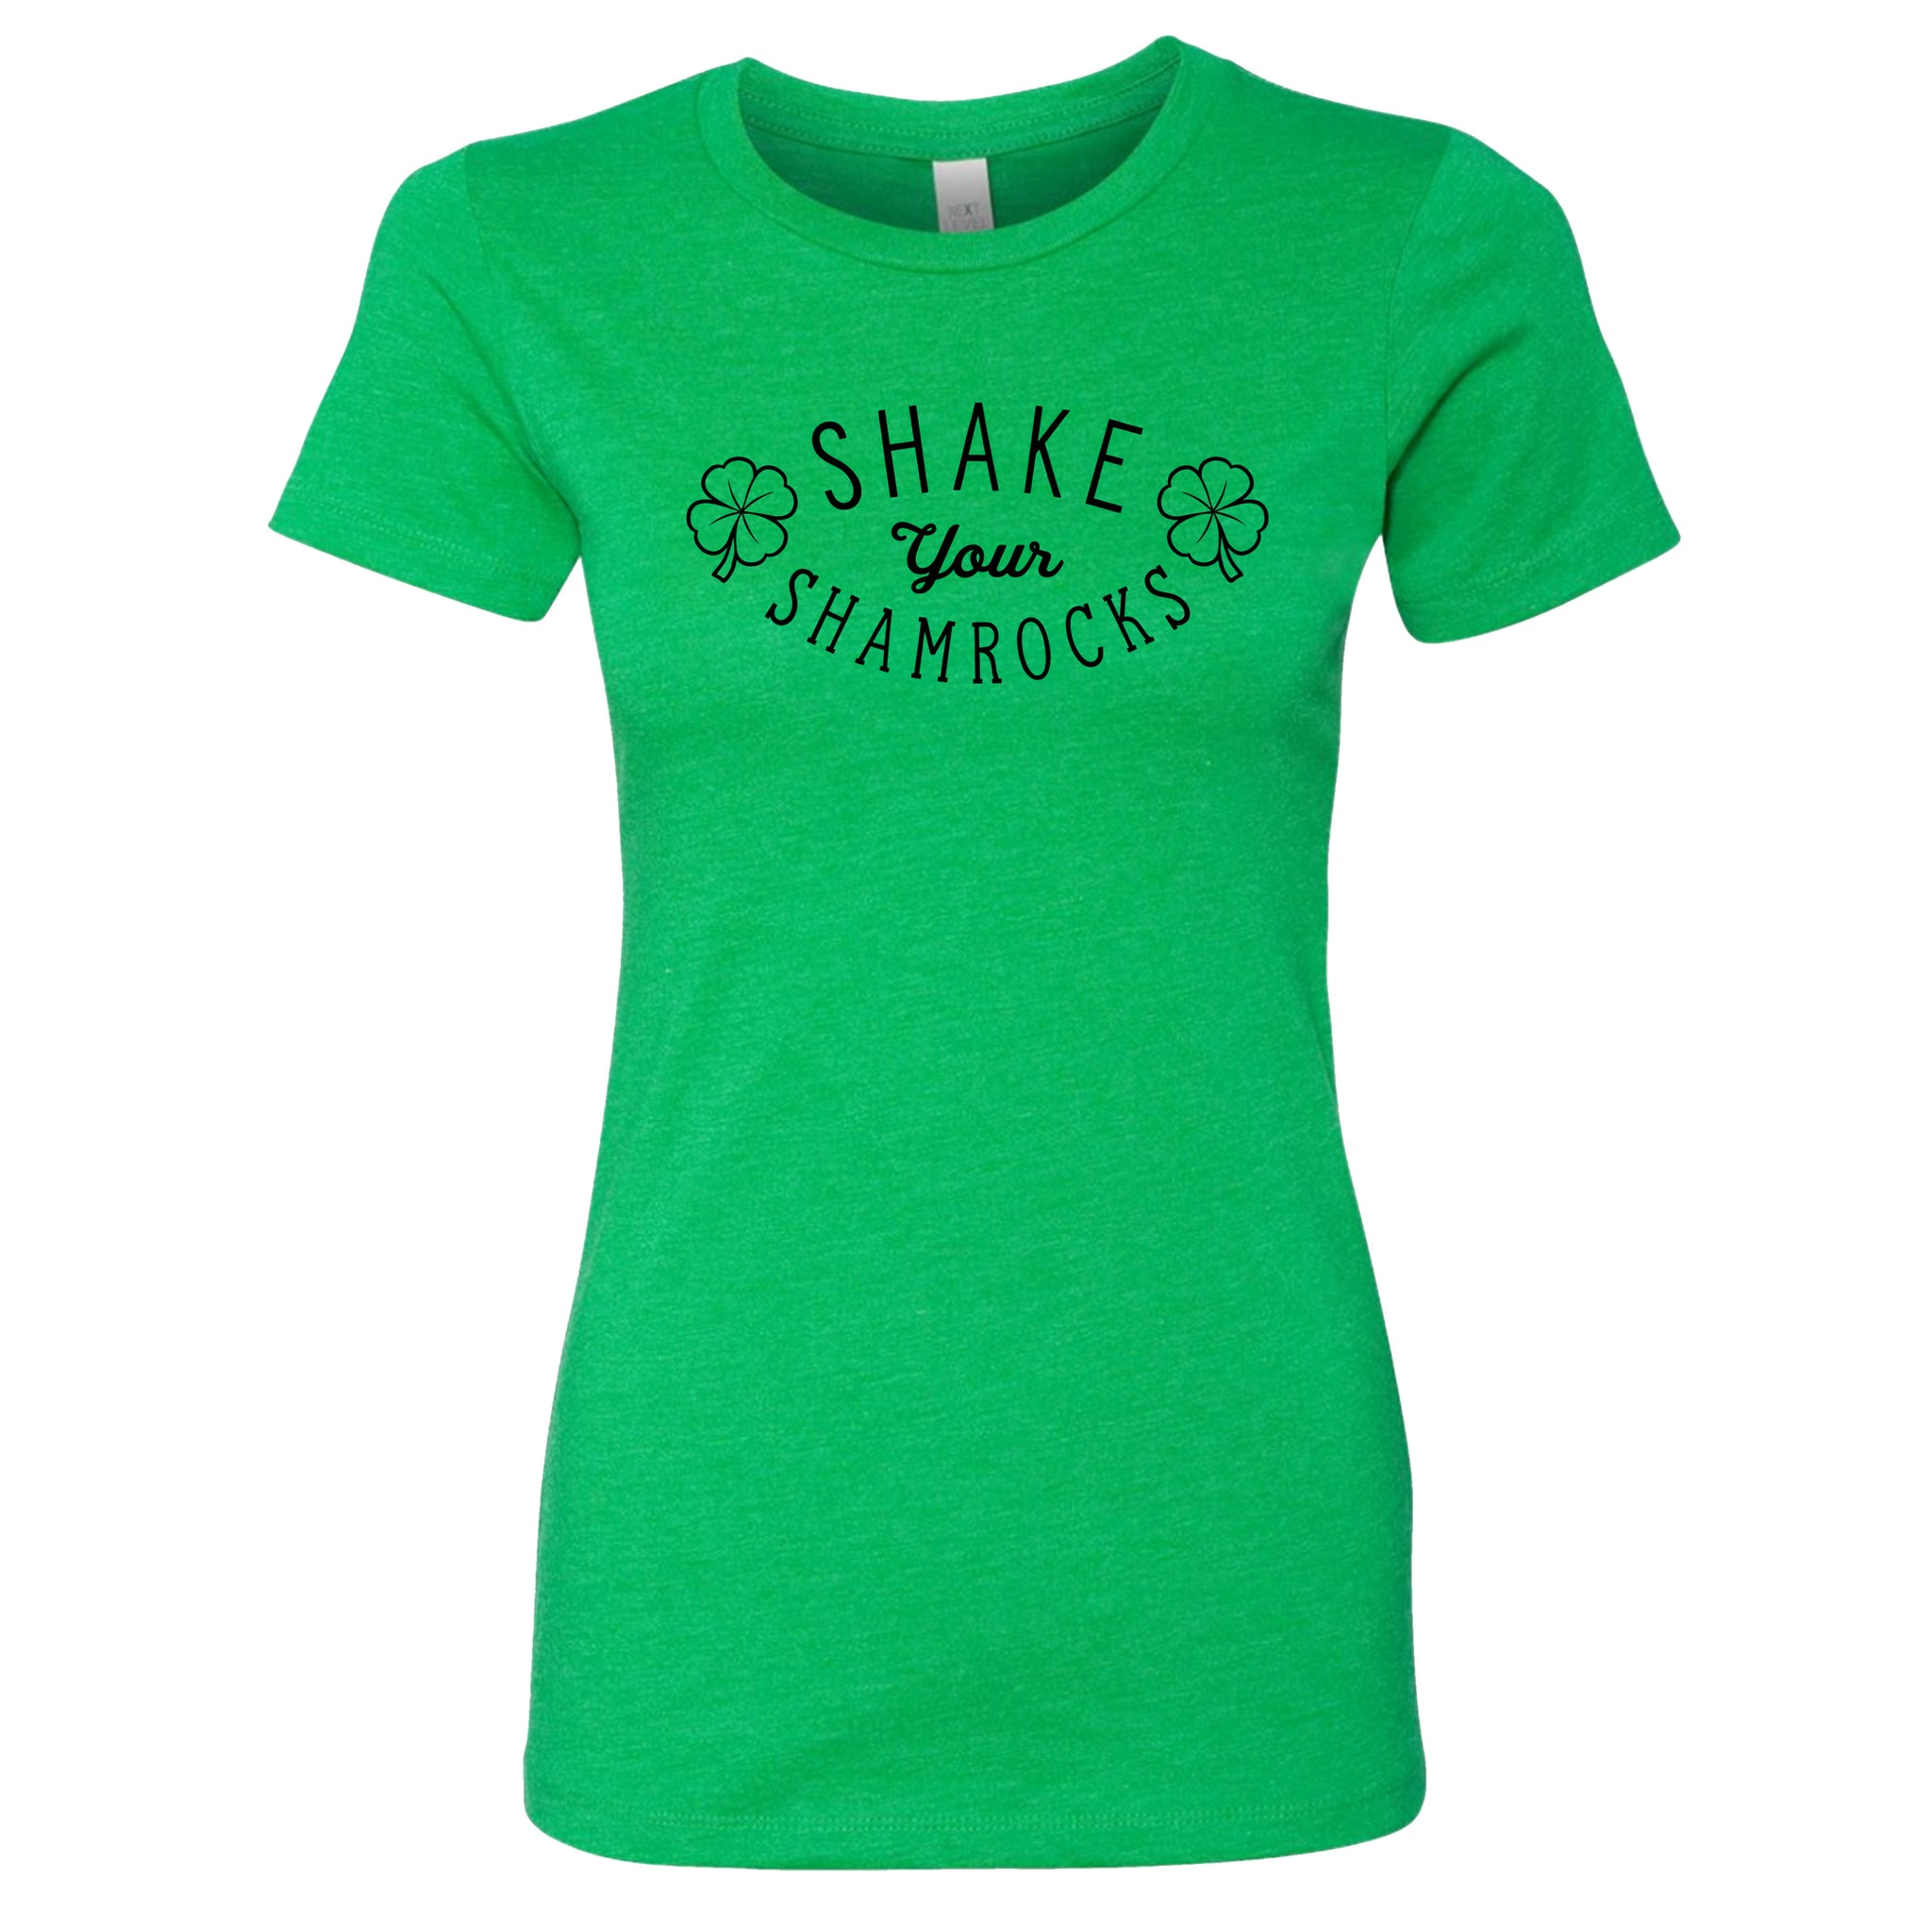 Ladies Shake Your Shamrocks